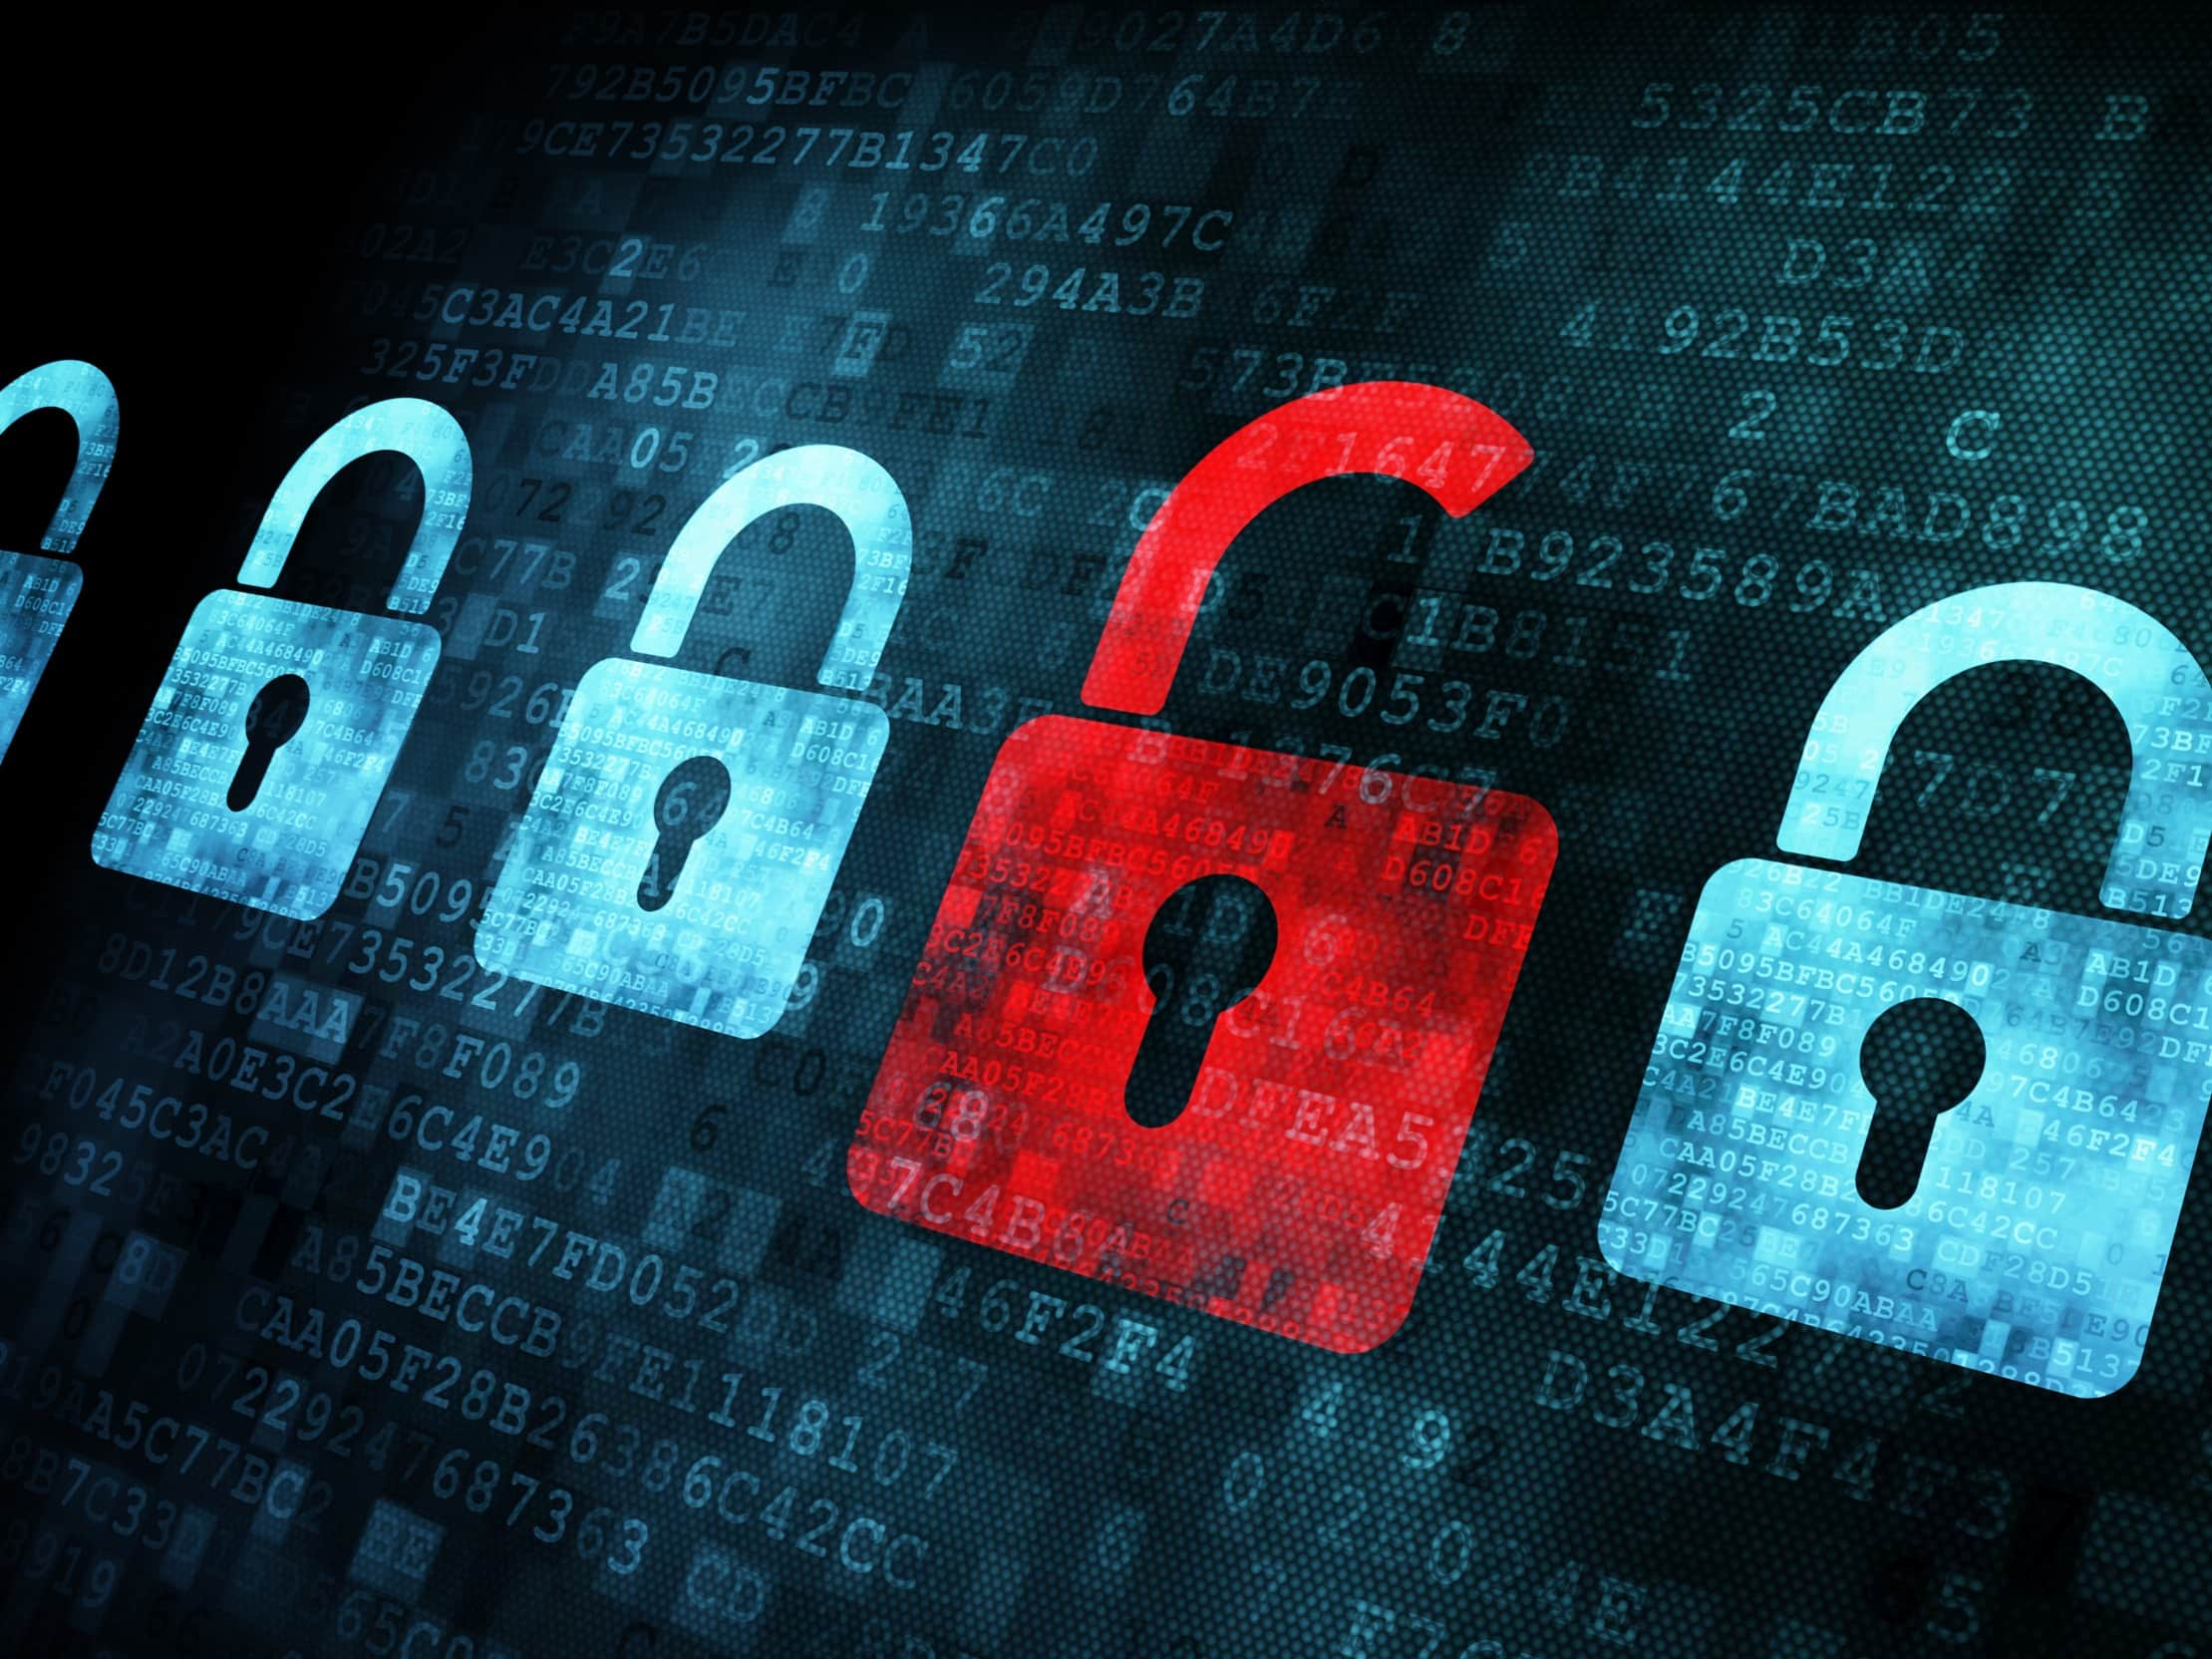 content/en-au/images/repository/isc/types-of-cybercrimes-tips.jpg